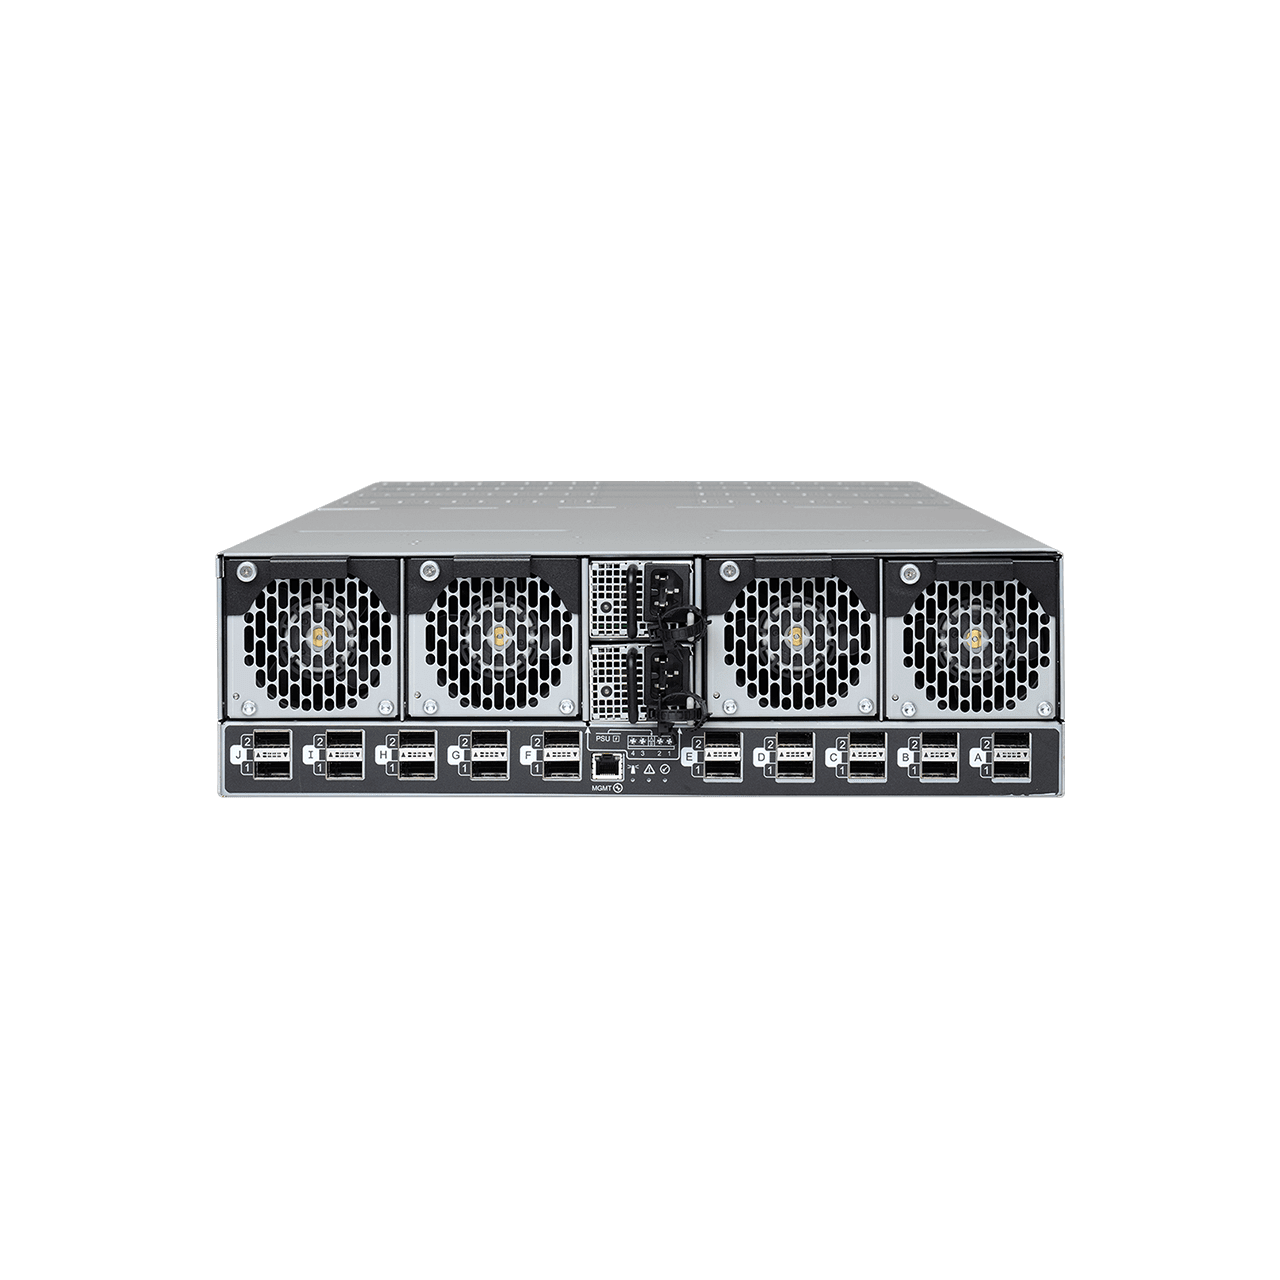 product-openflex-composable-infrastructure-back-western-digital